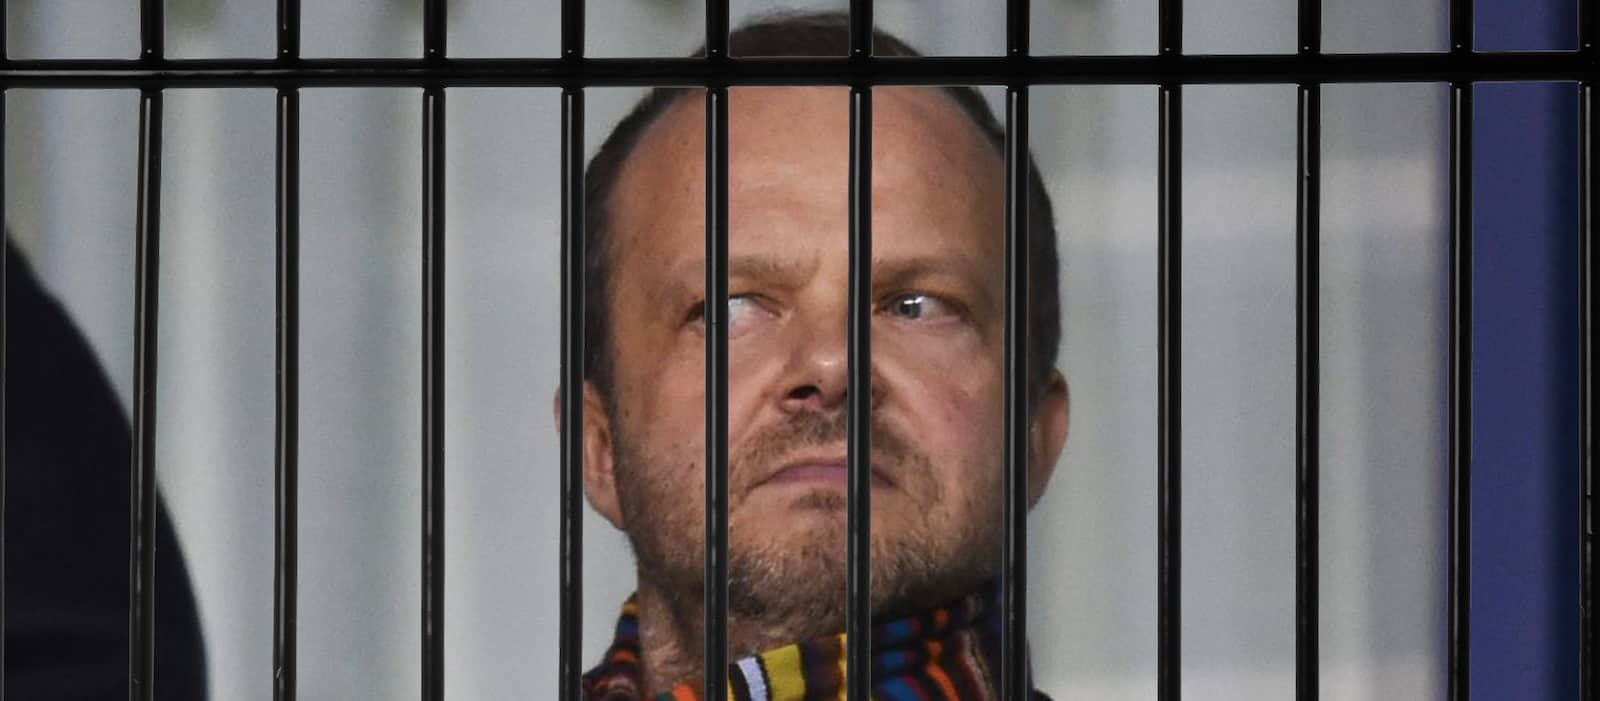 Ed Woodward on Trial: Guilty or Not Guilty?